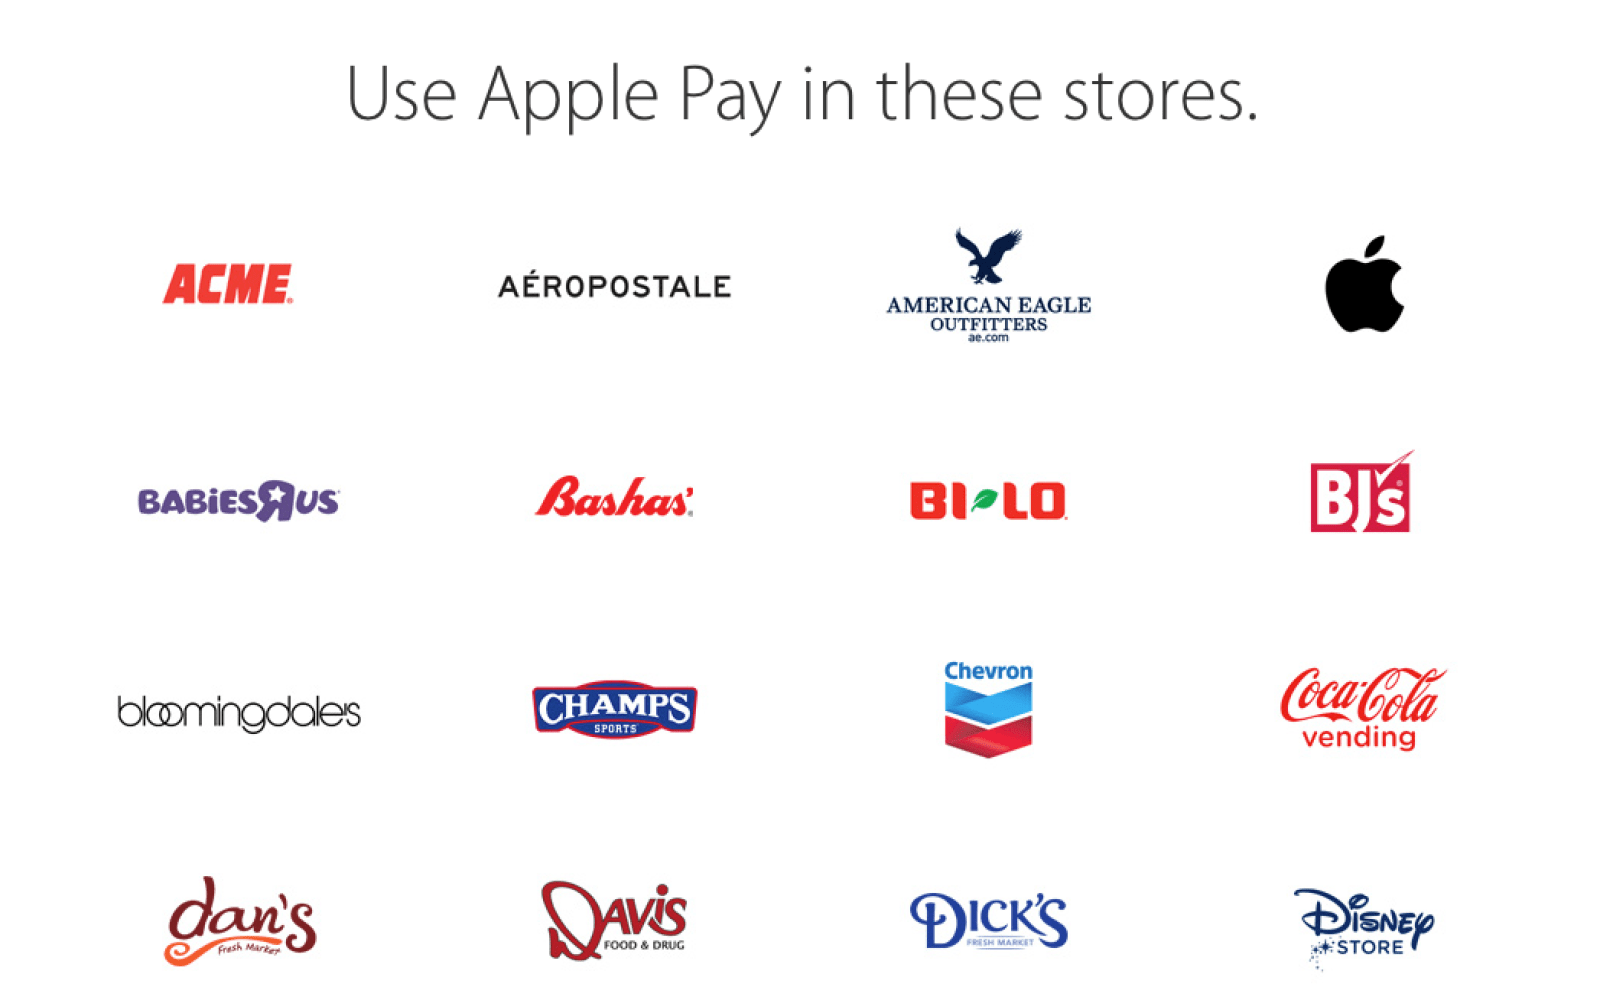 Apple adds 10 new retailers to Apple Pay website, brings total to 68 merchants